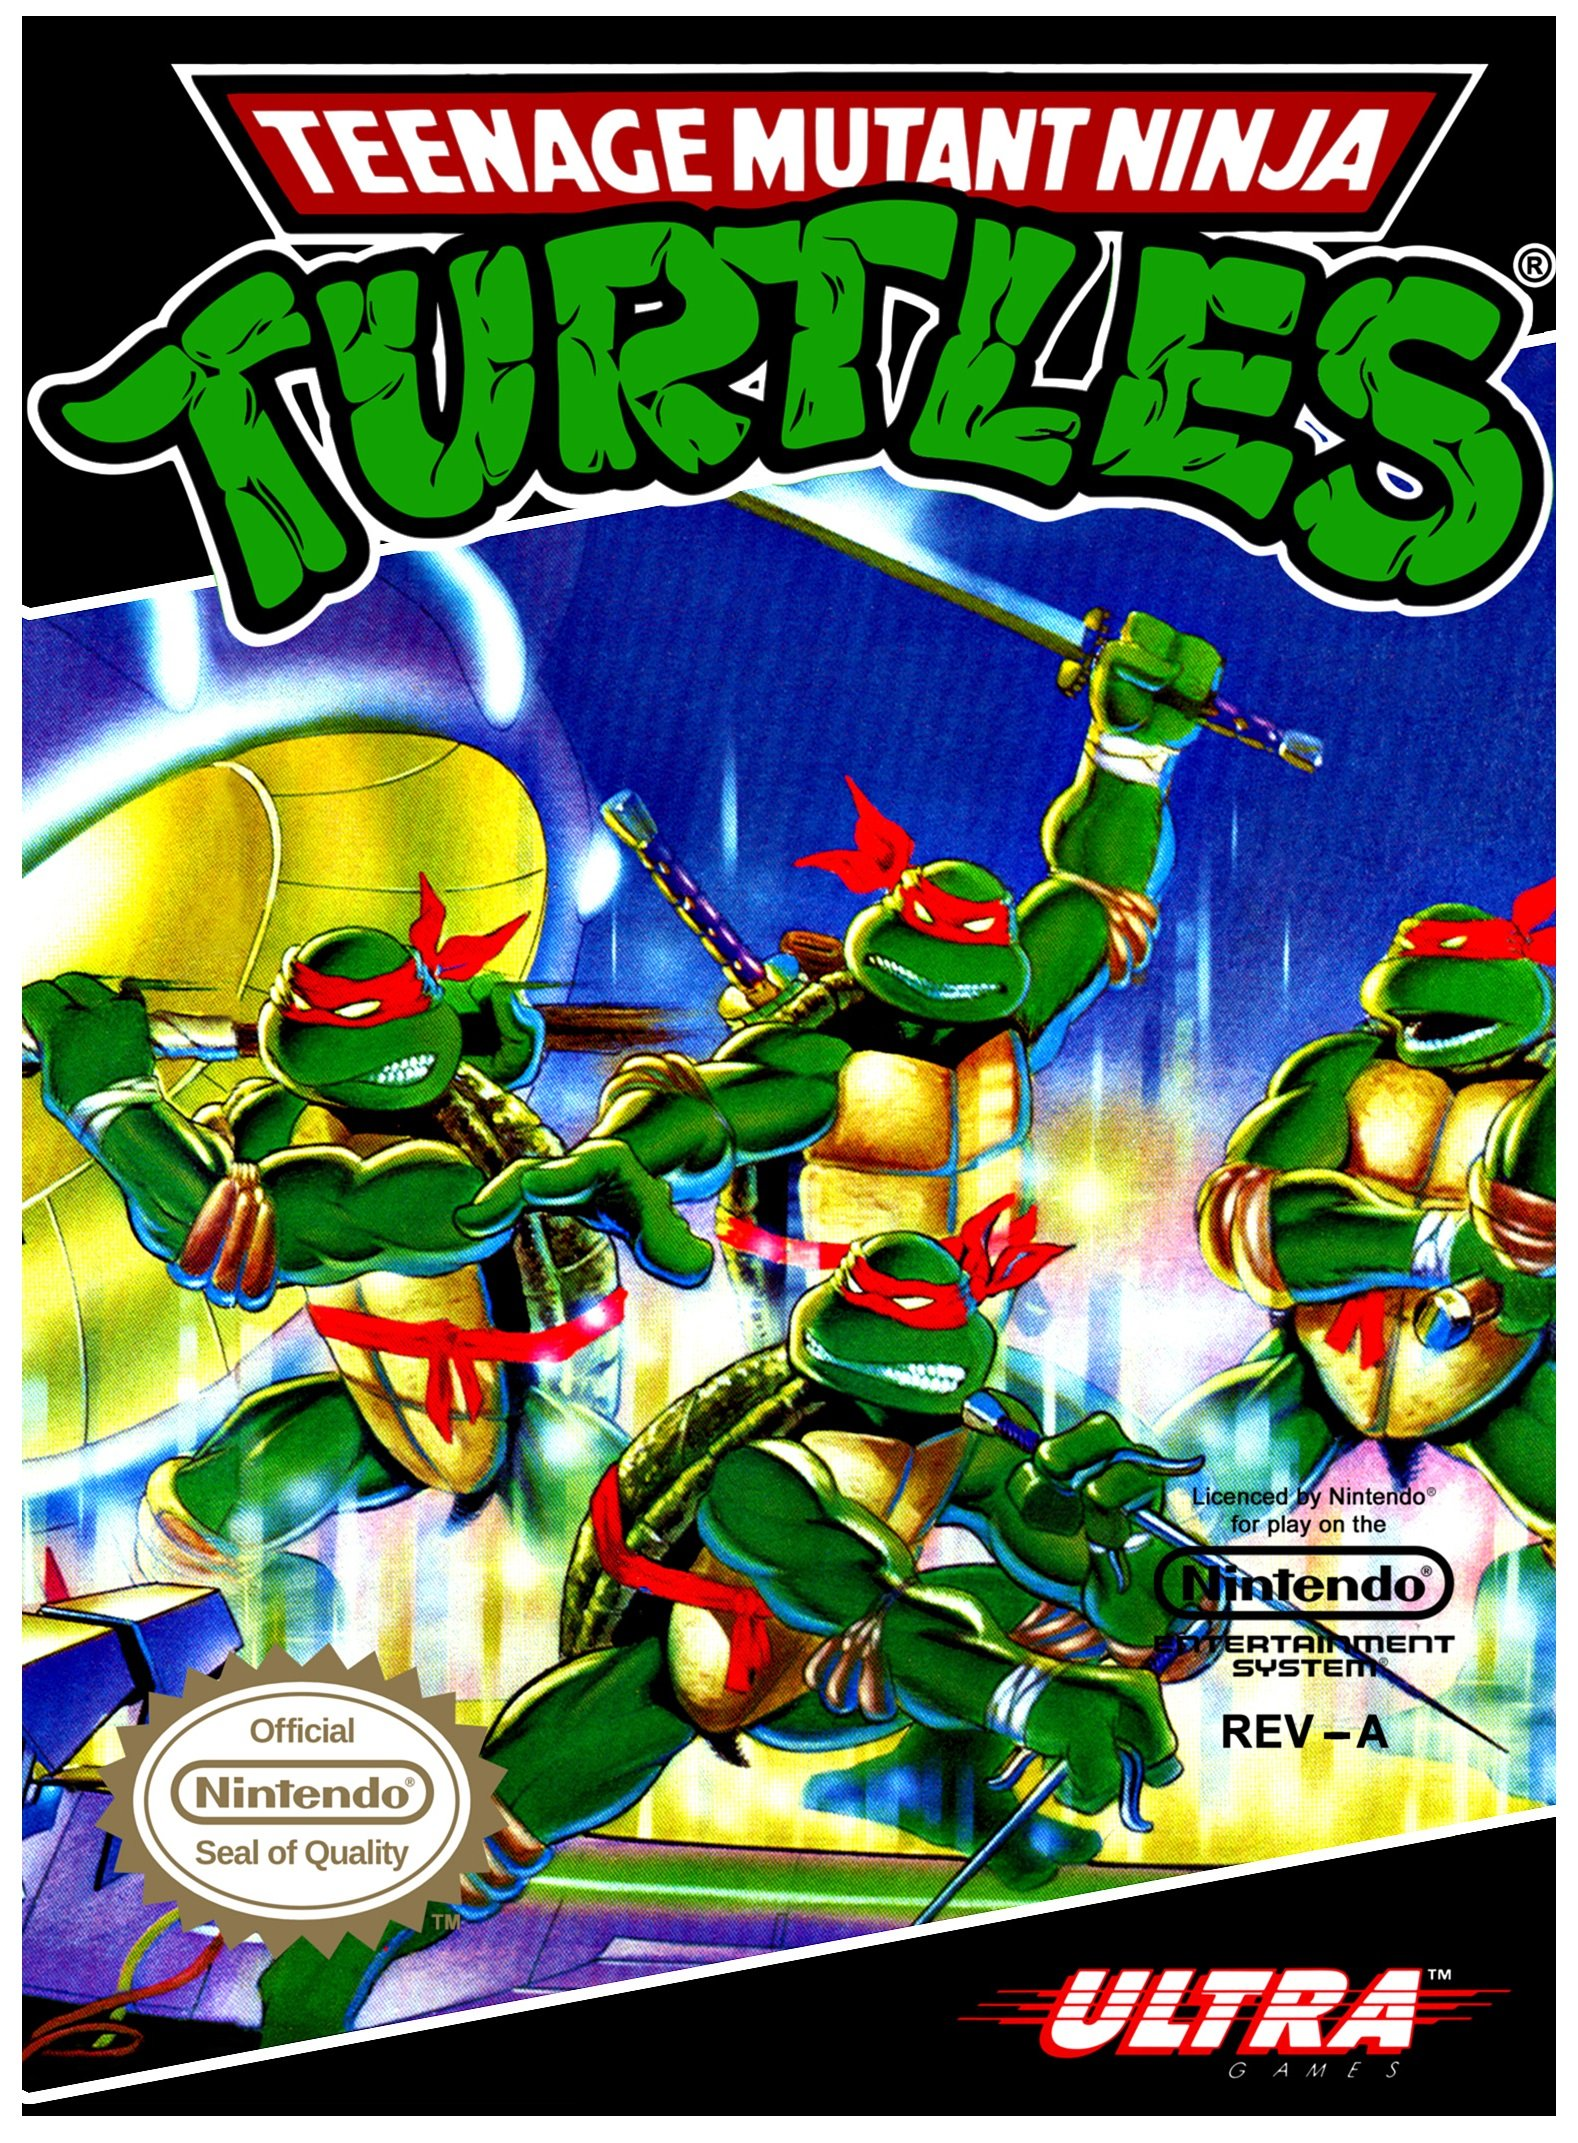 Image Unavailable Not Available For Color Teenage Mutant Ninja Turtles